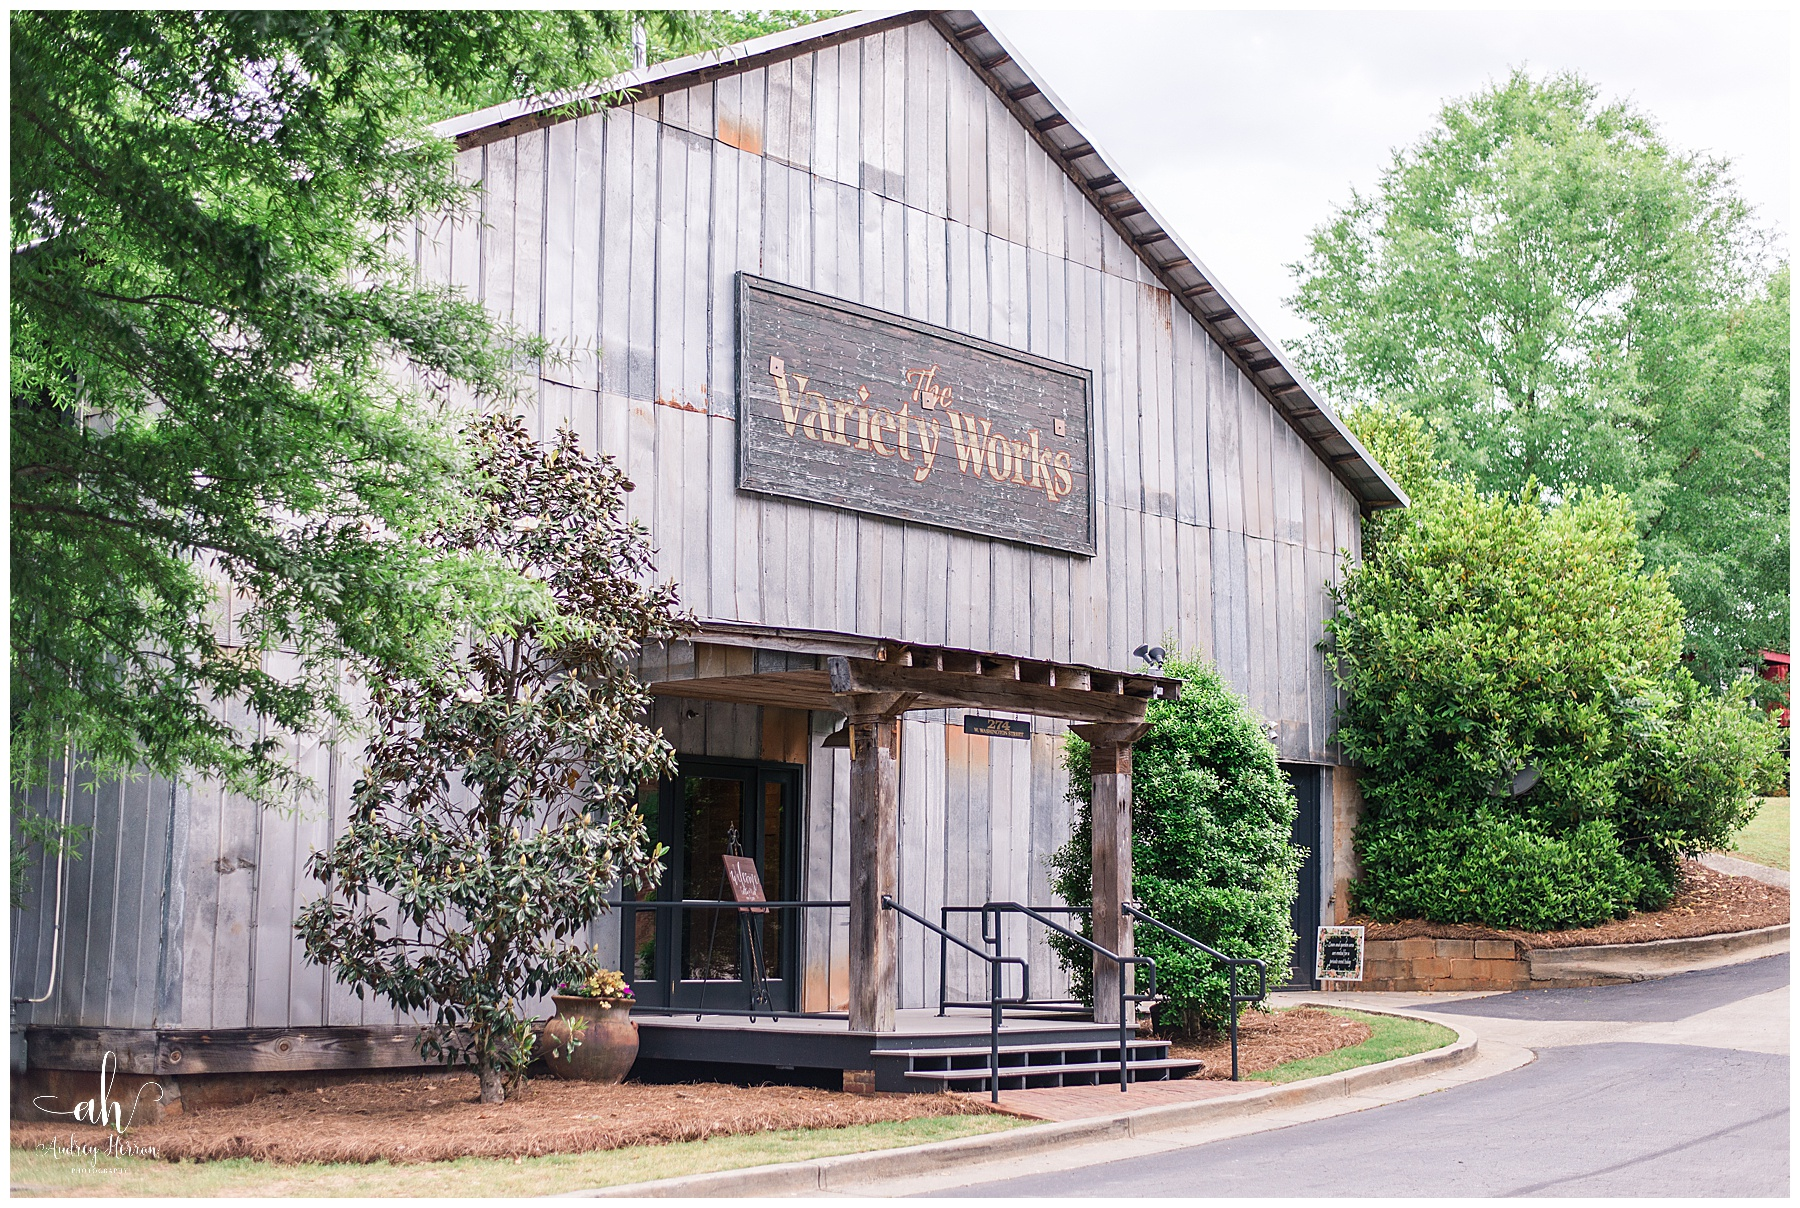 The Variety Works, Variety Works Wedding, Variety Works Madison, Variety Works Madison Georgia, Madison Georgia Wedding, Georgia Wedding Photographer, Southern Wedding, The Variety Works Wedding